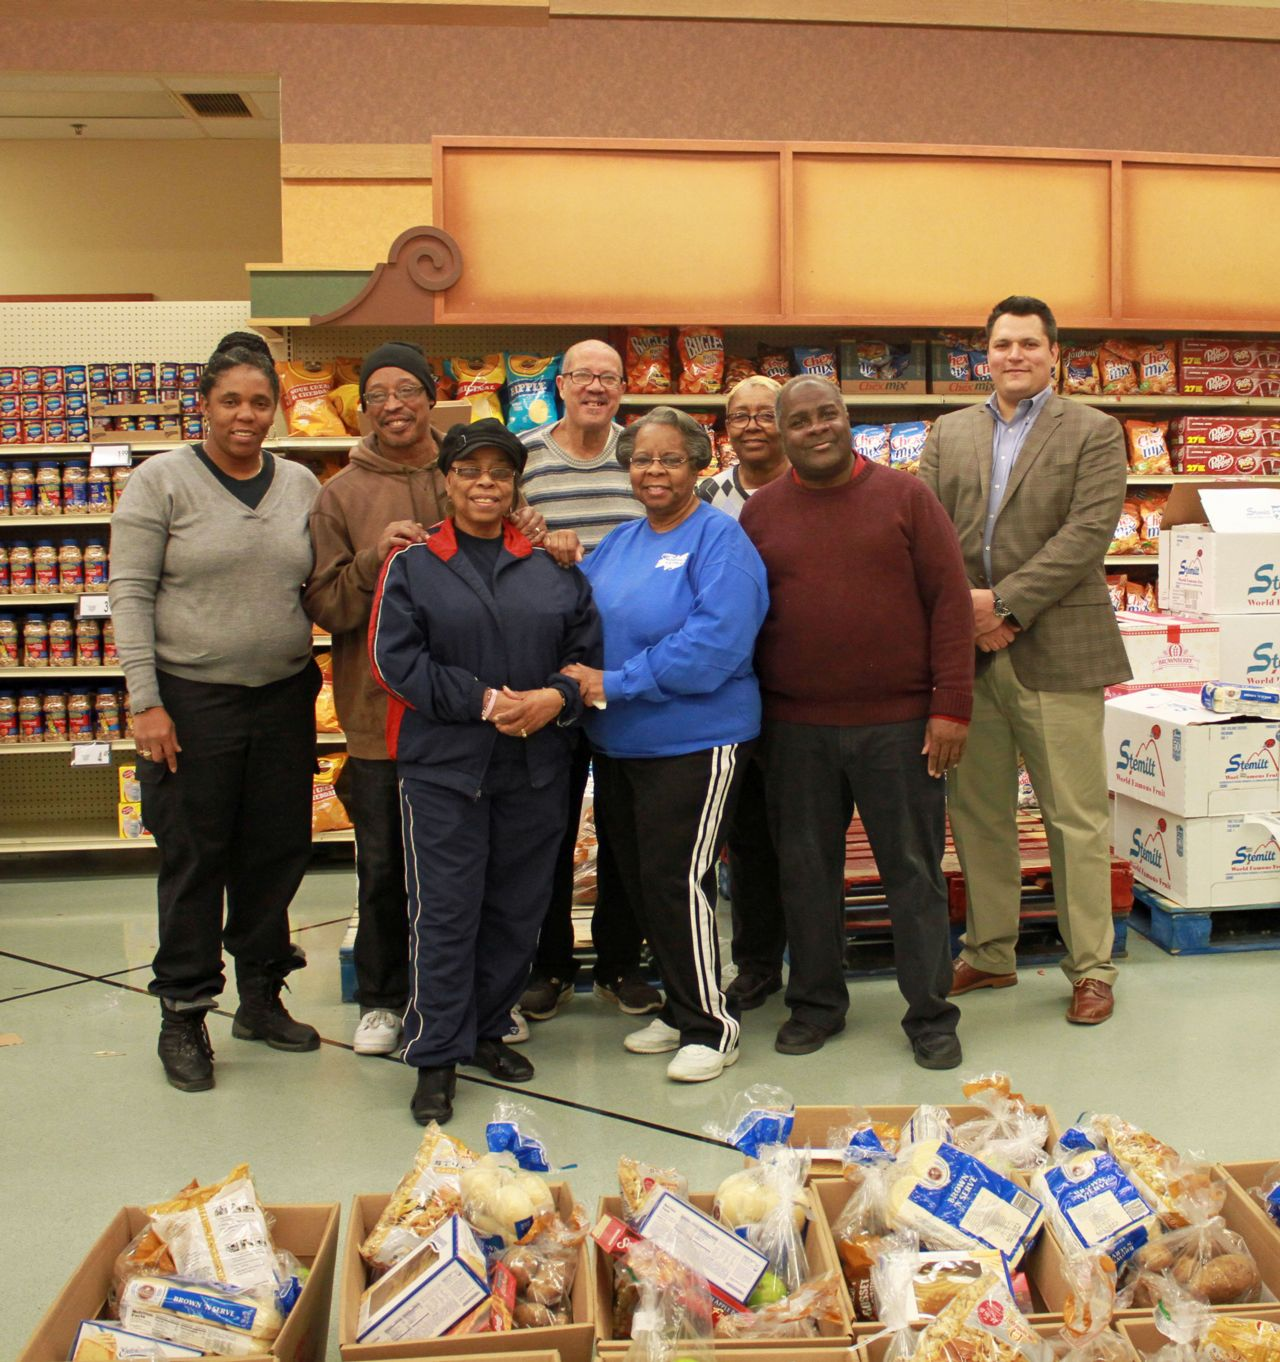 Hupy and Abraham employees volunteering at Basket Giveaway